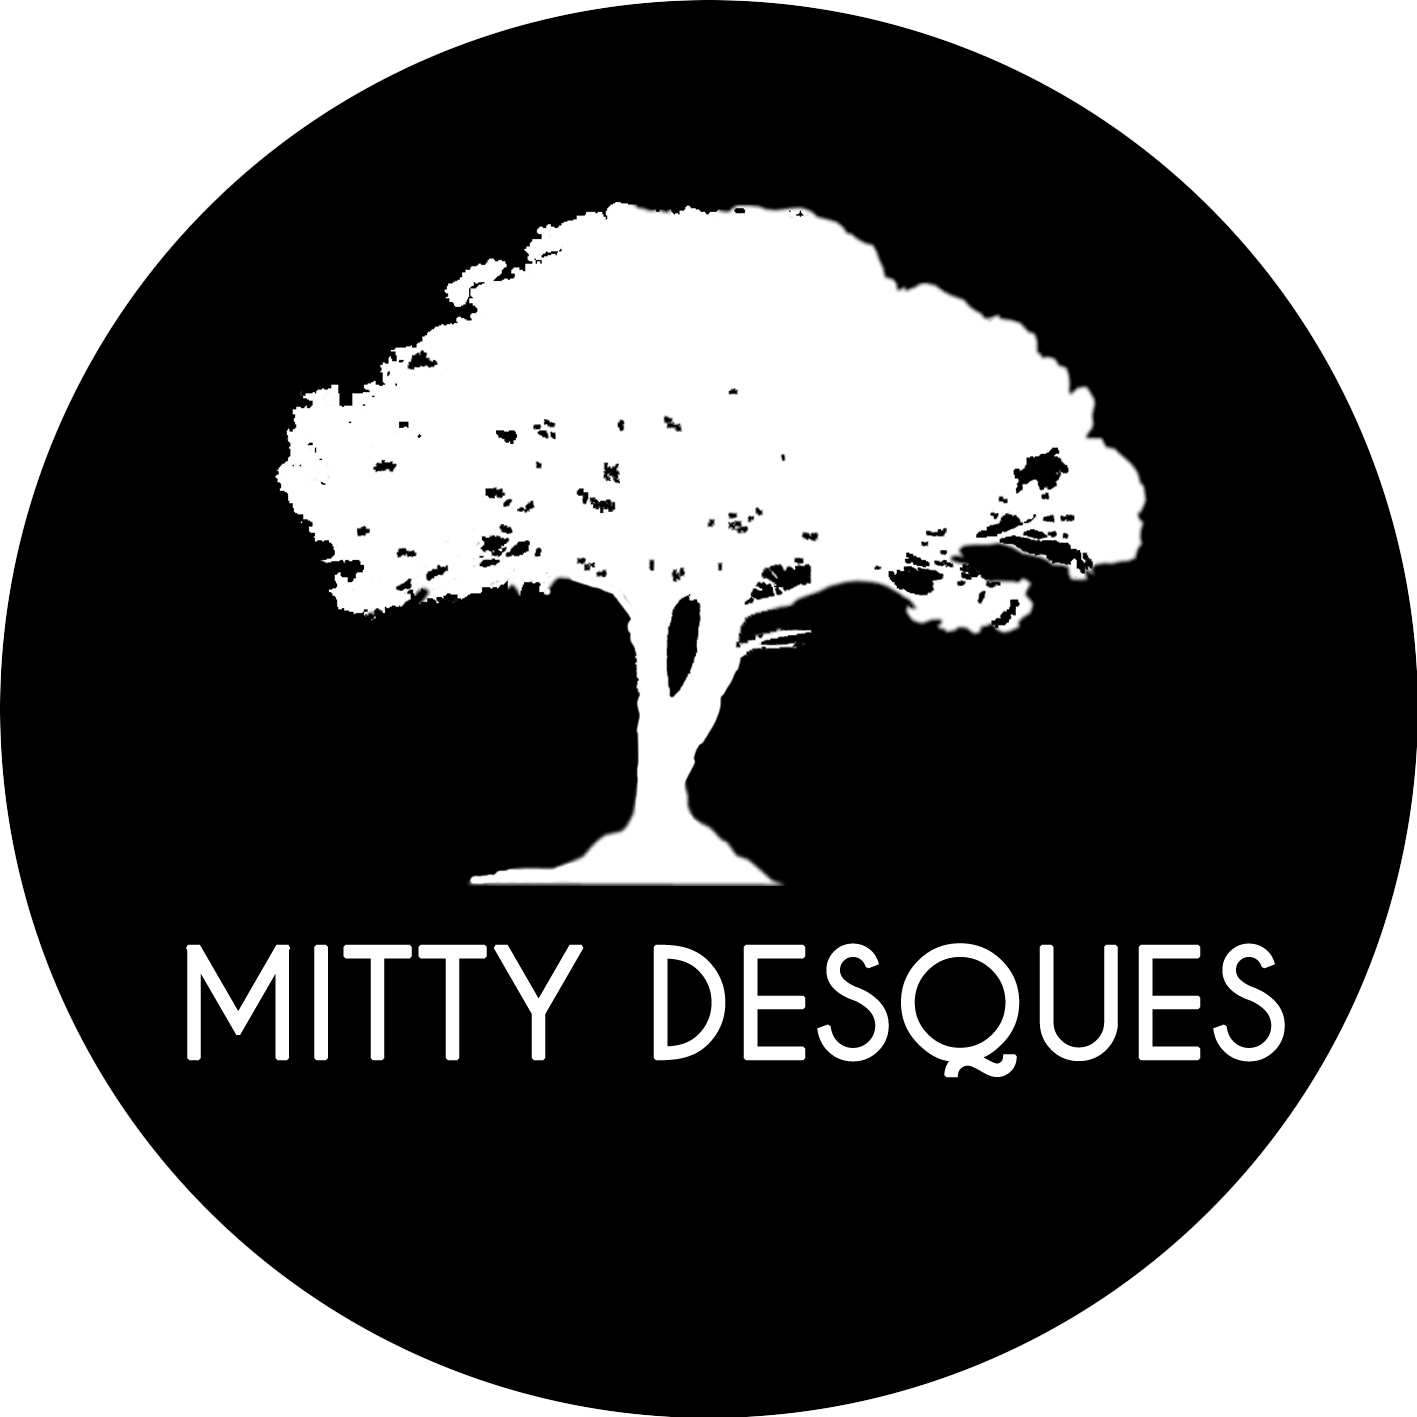 Mitty's boutique